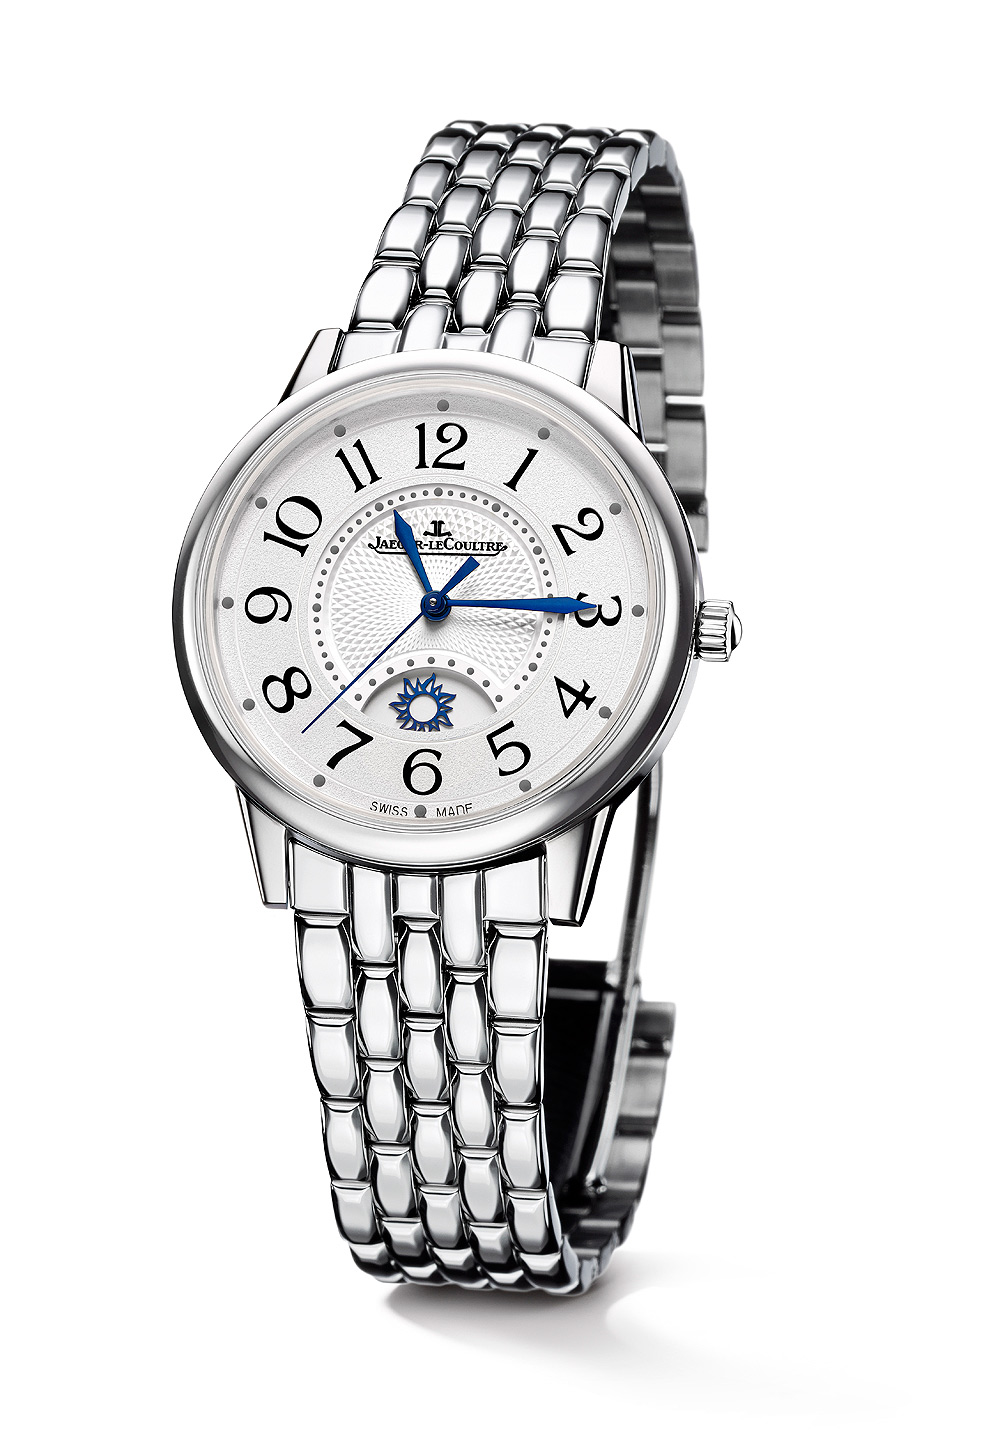 Jaeger-LeCoultre Rendez-Vous Night & Day Large steel-bracelet